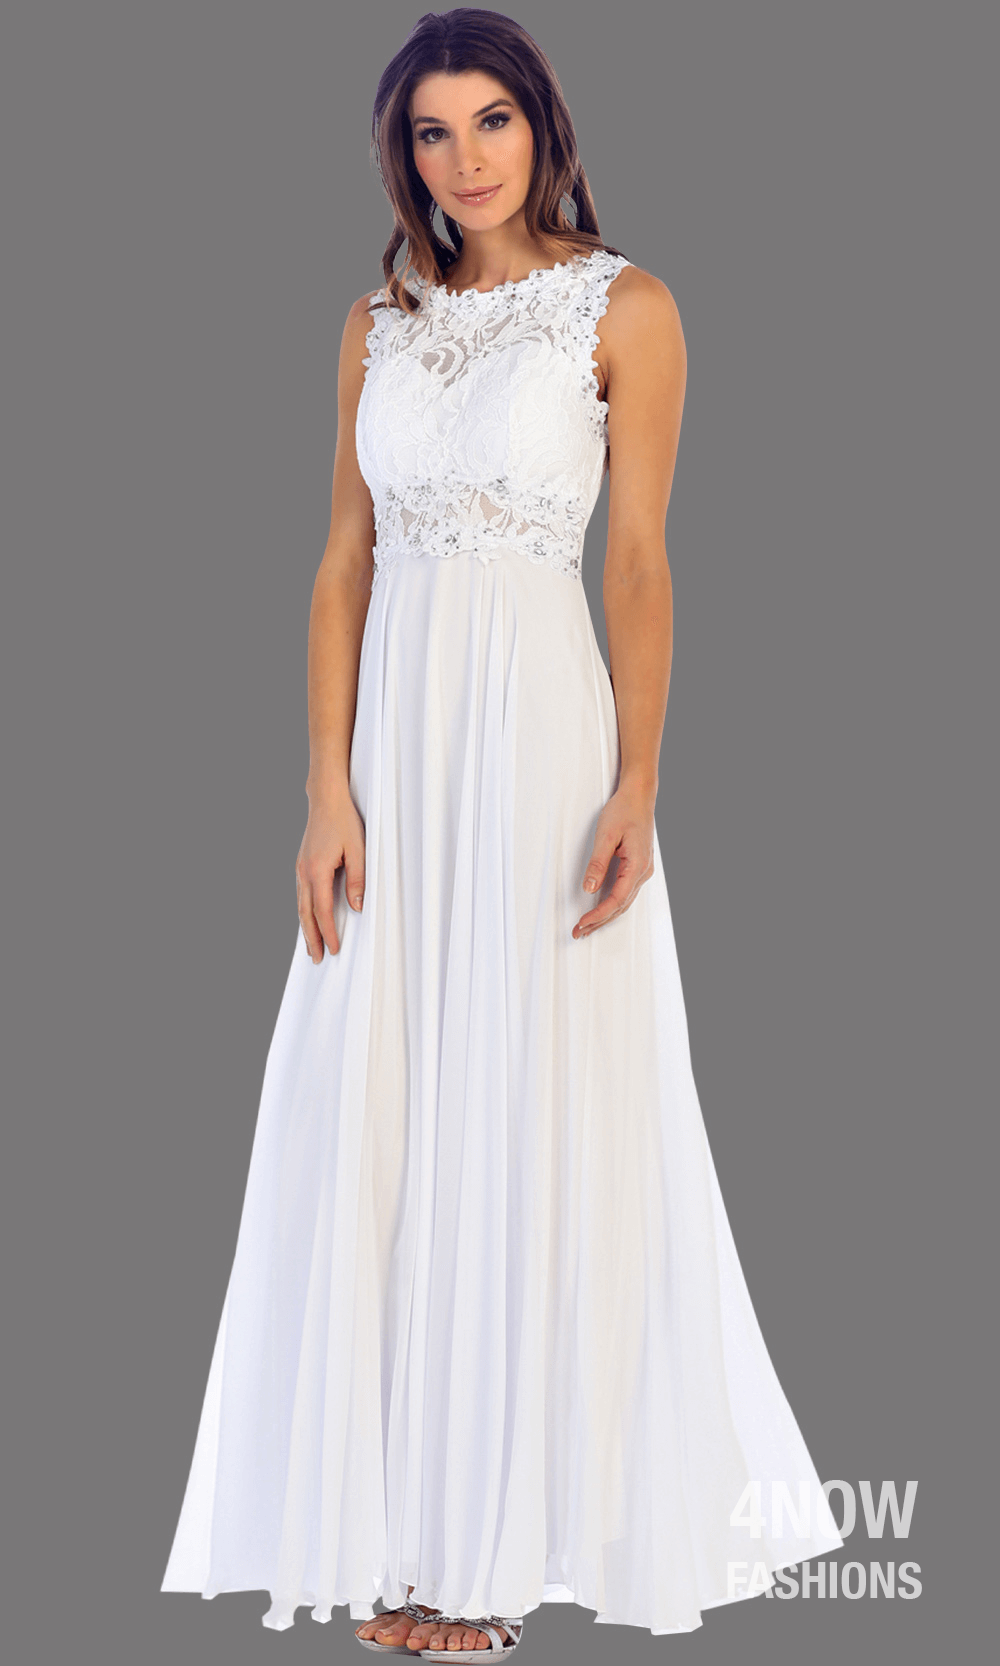 Long White High Neck Dress with Chiffon A-line Skirt